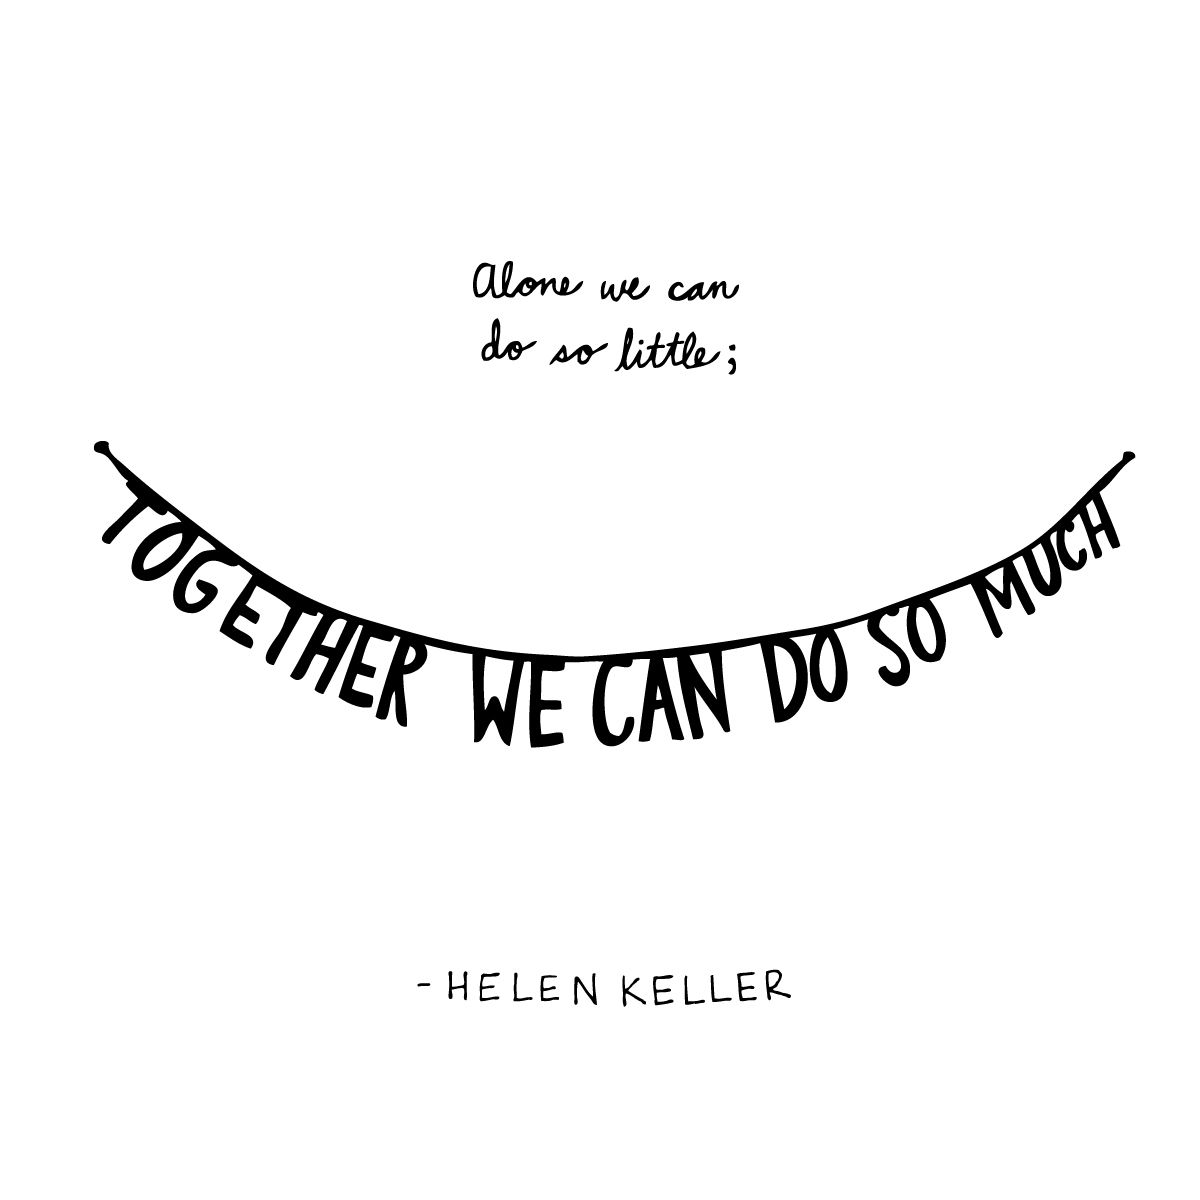 alone we can do so little together we can do so much helen alone we can do so little together we can do so much